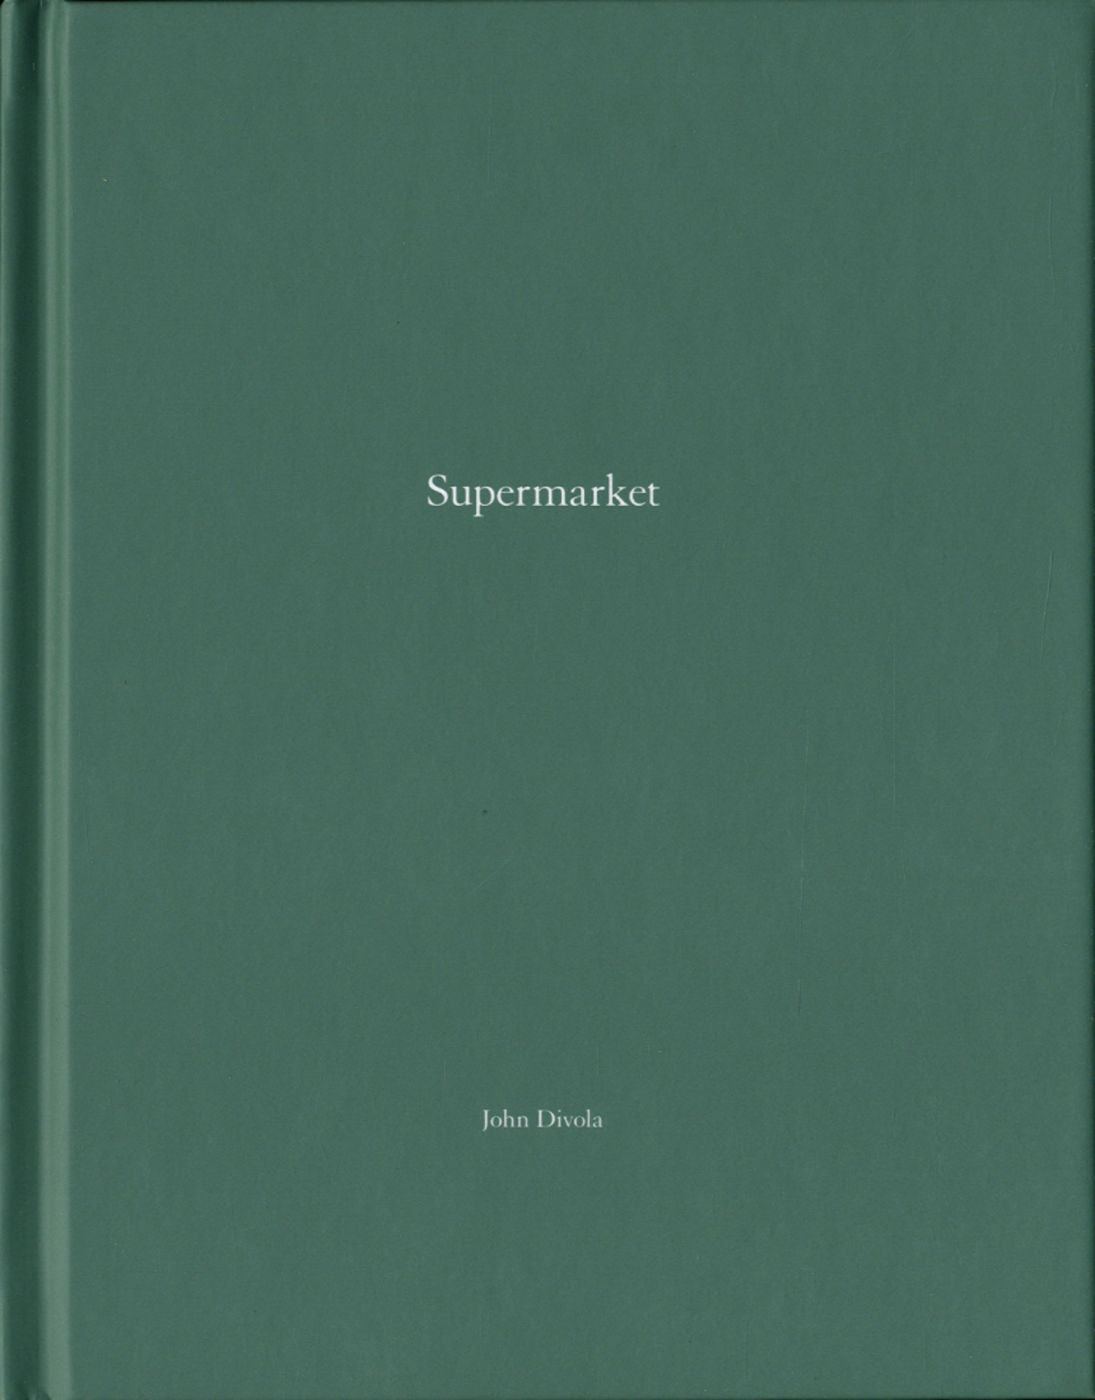 John Divola: Supermarket (One Picture Book #81), Limited Edition (with Print)